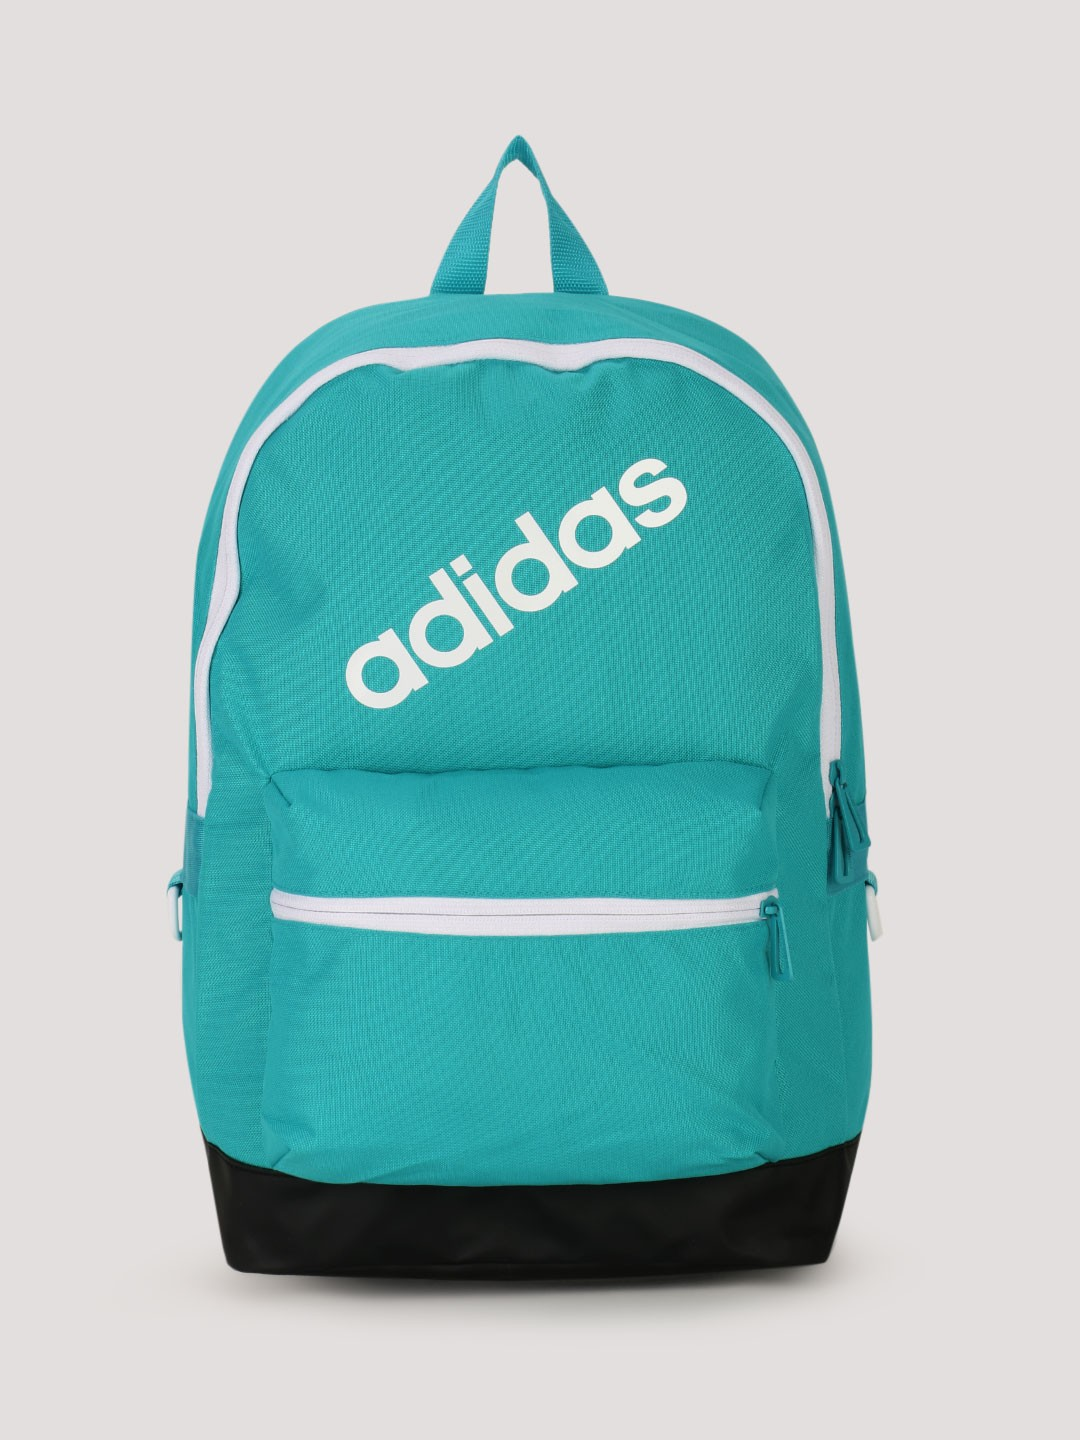 adidas backpacks online india  89319 93f4b0a42f534f68528abcd1a70079ac image1 zoom 05a190e69ec36